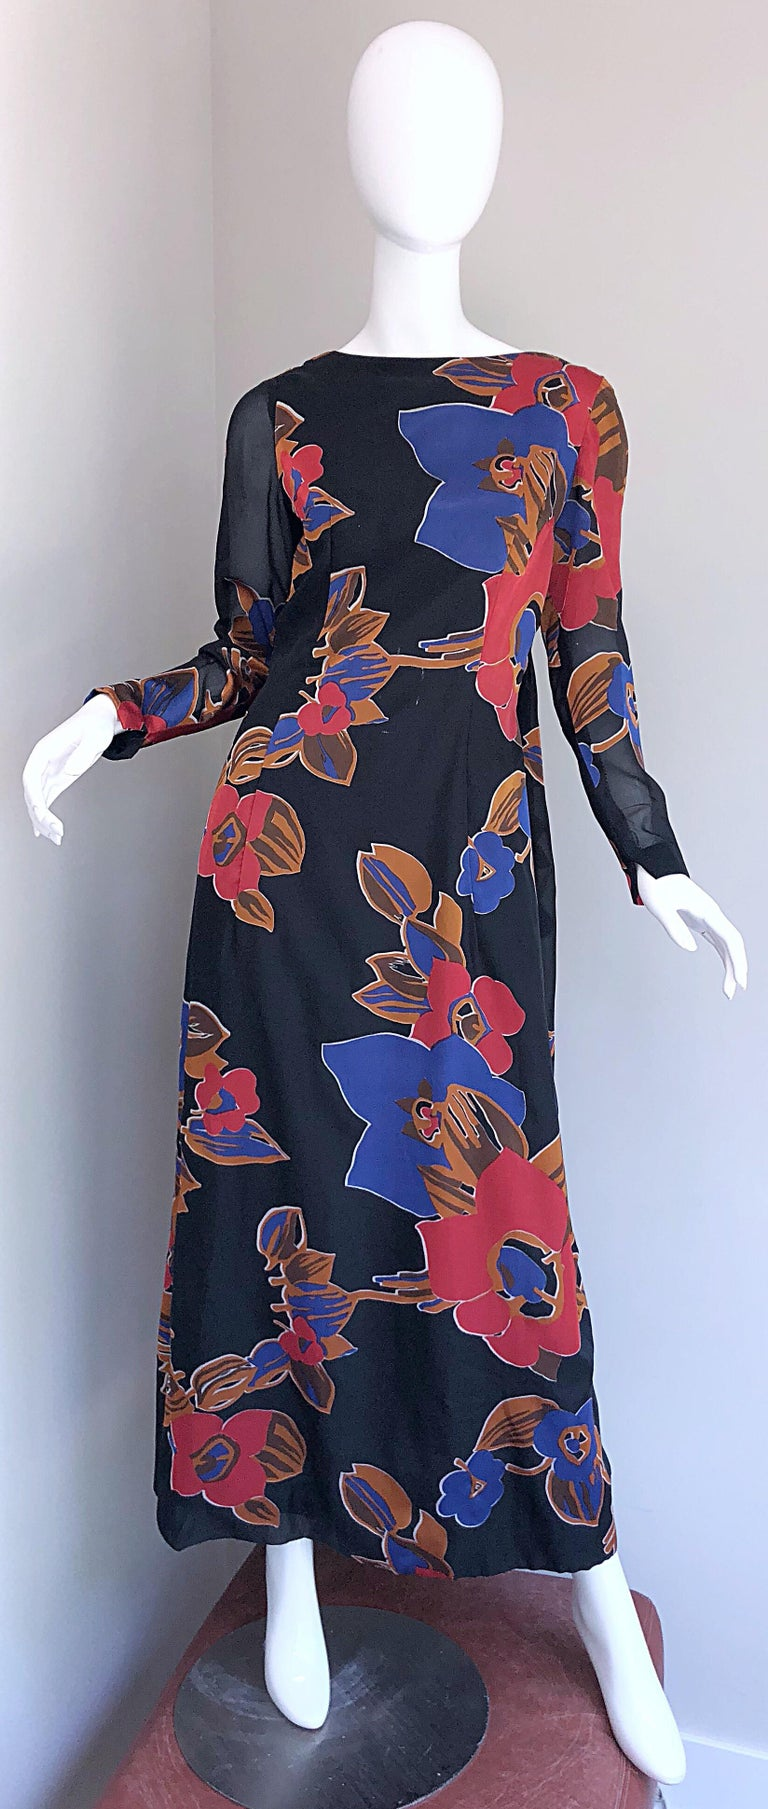 1960s John Boyle Bishop Black + Brown + Red Abstract Trained 60s Gown Maxi Dress For Sale 12